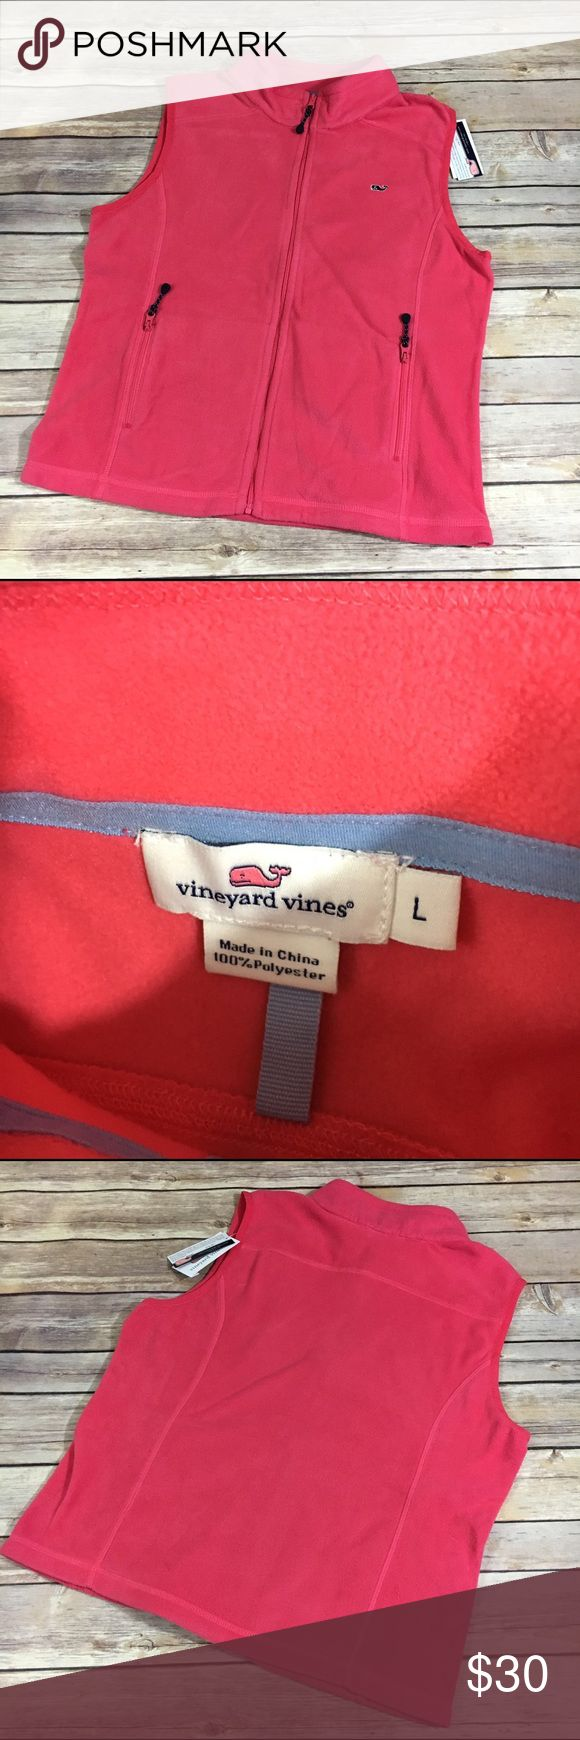 """NEW NWT Vineyard Vines Sailors Red Fleece Vest L NEW NWT Vineyard Vines Sailors Red Fleece Vest L  I'm honestly not sure if this is a girls large or a women's large.  It looks too big to be a girls large and too small to be a women's large, so here are the measurements for you.  Length = 21"""" P to P = 18"""" - if doubled, this falls between the girls' large chest measurement of 31.5"""" and the womens of 40"""" to 41.5"""".    So maybe more like a women's small to medium?  It is an outlet item.  #new…"""